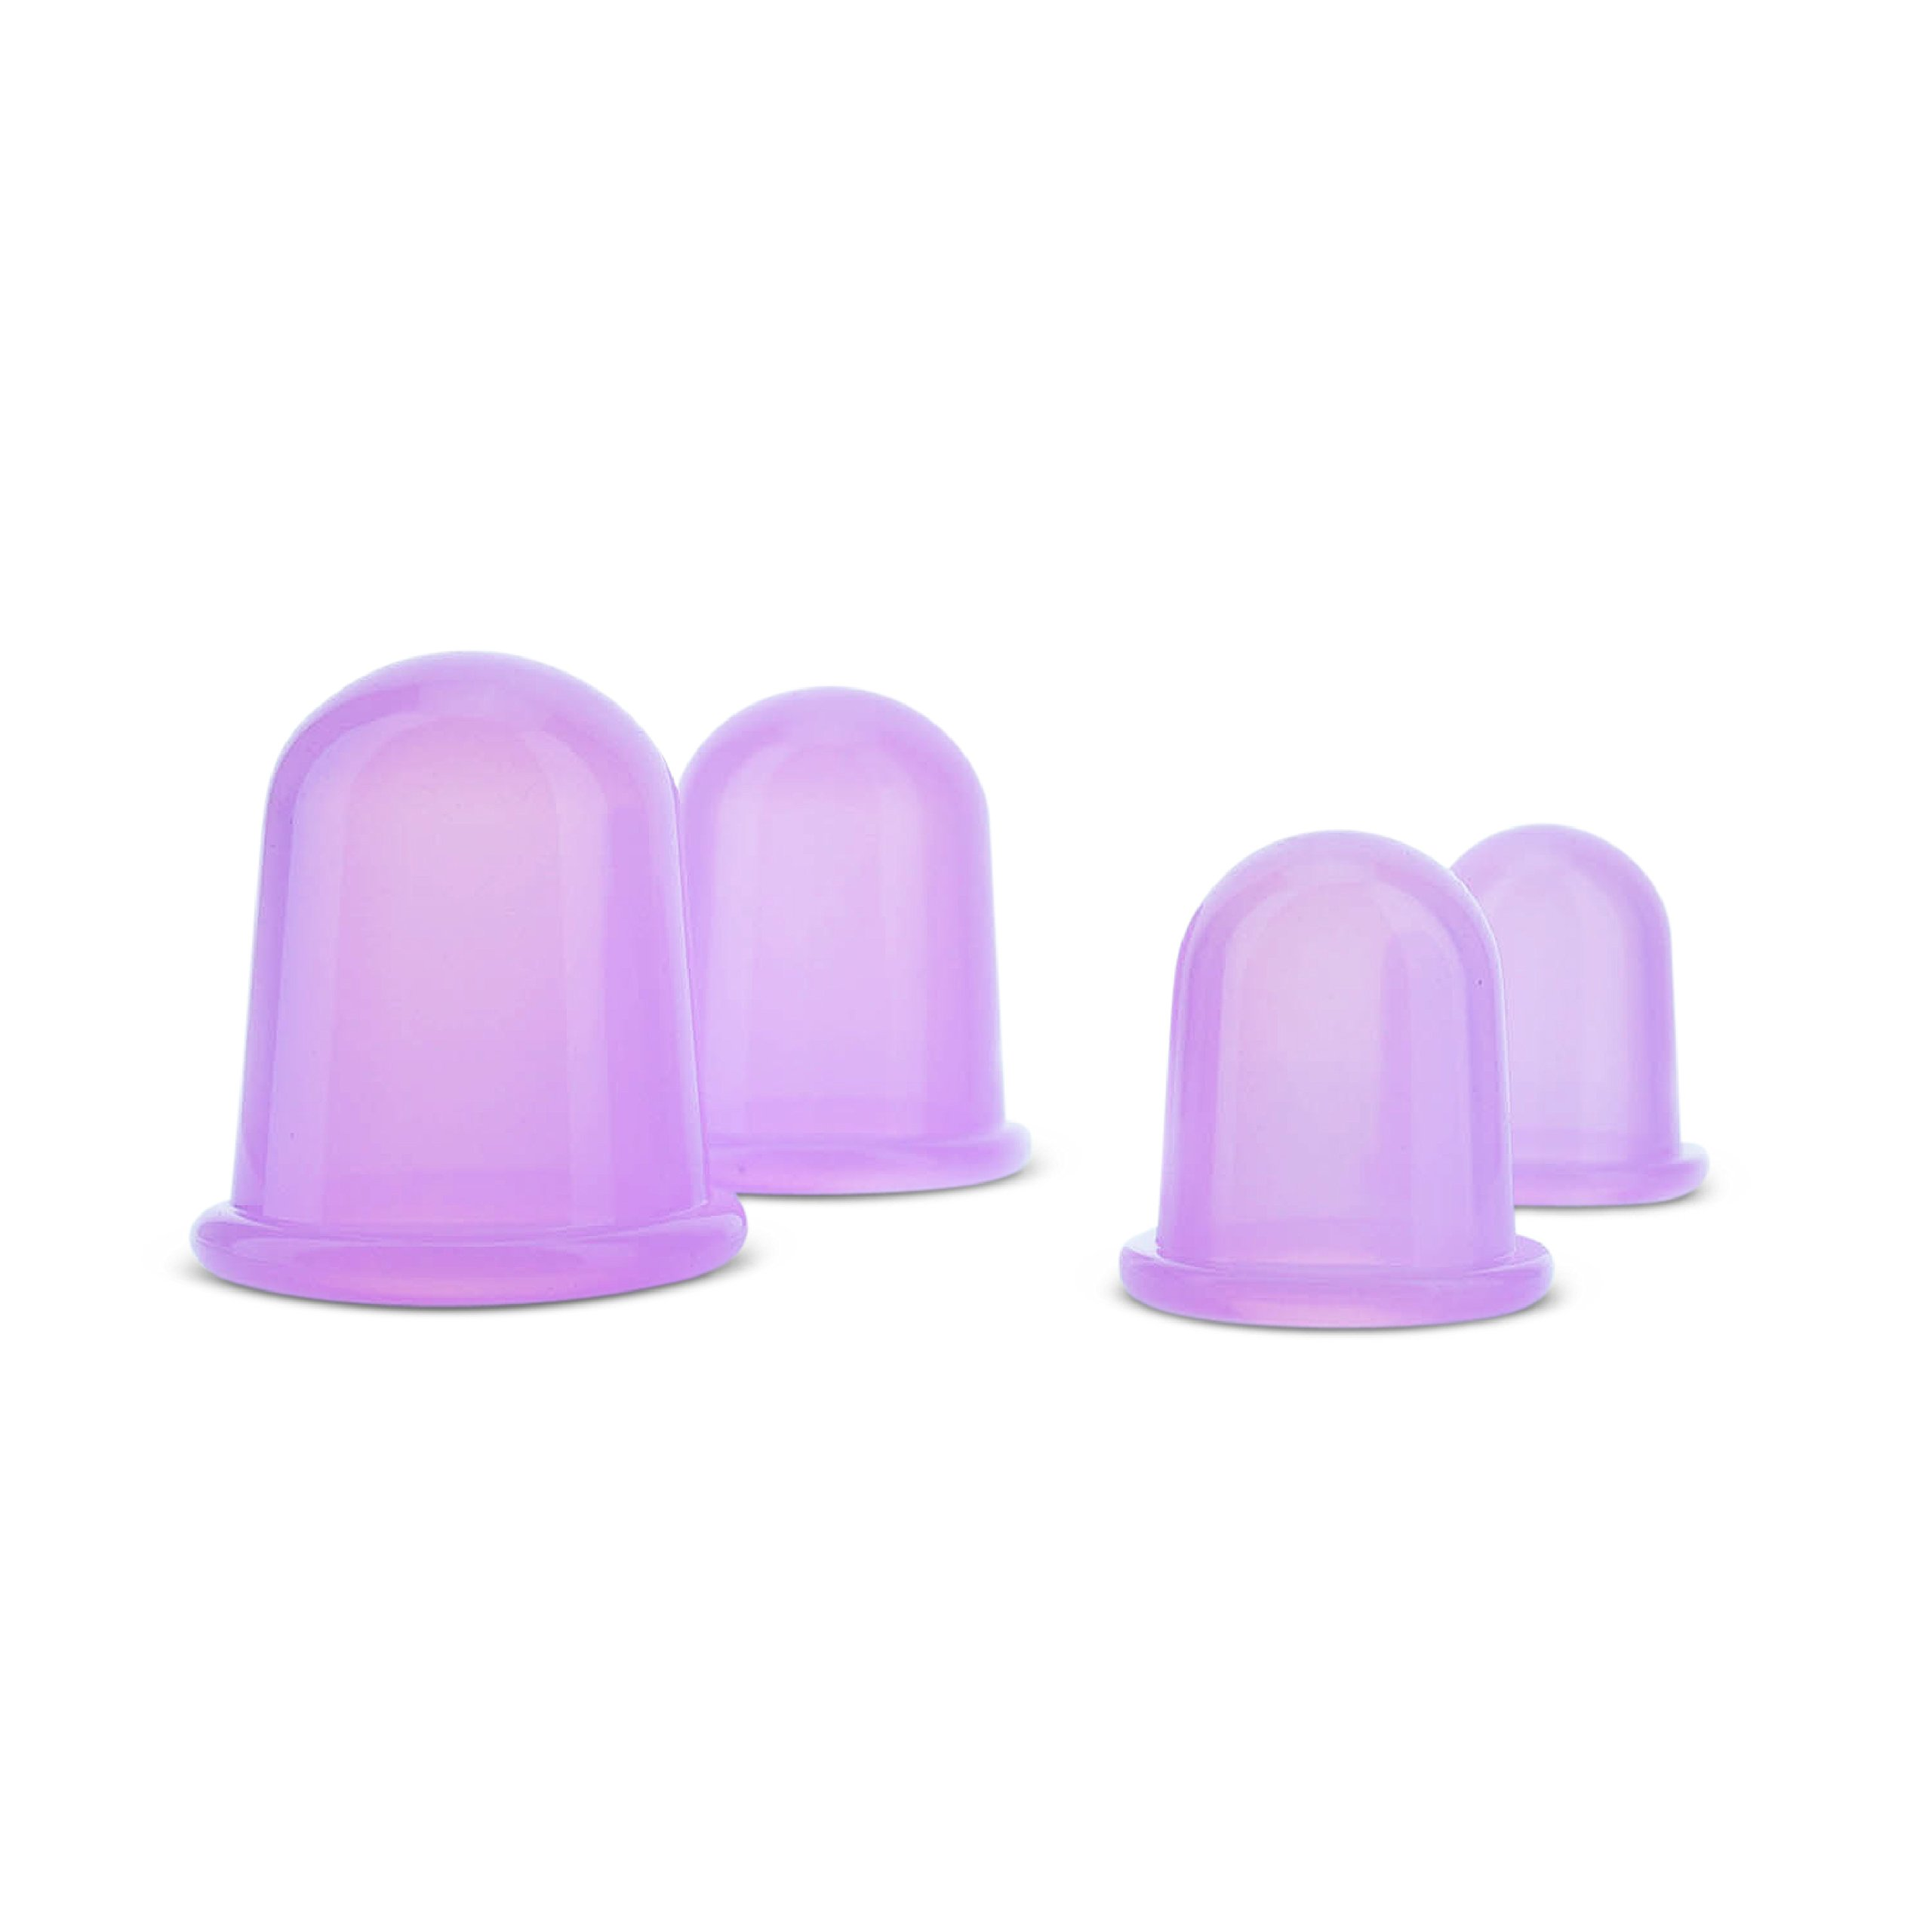 Derma Medico Silicone Body Massage Cups for Natural Cupping Therapy – Gift Box of 4 Cups: 2 Large + 2 Medium Cups with FREE Storage Bag and Instructions – Anti Cellulite Vacuum, Helps with Stretch Marks, Relieves Muscle Pain – Promotes Rela